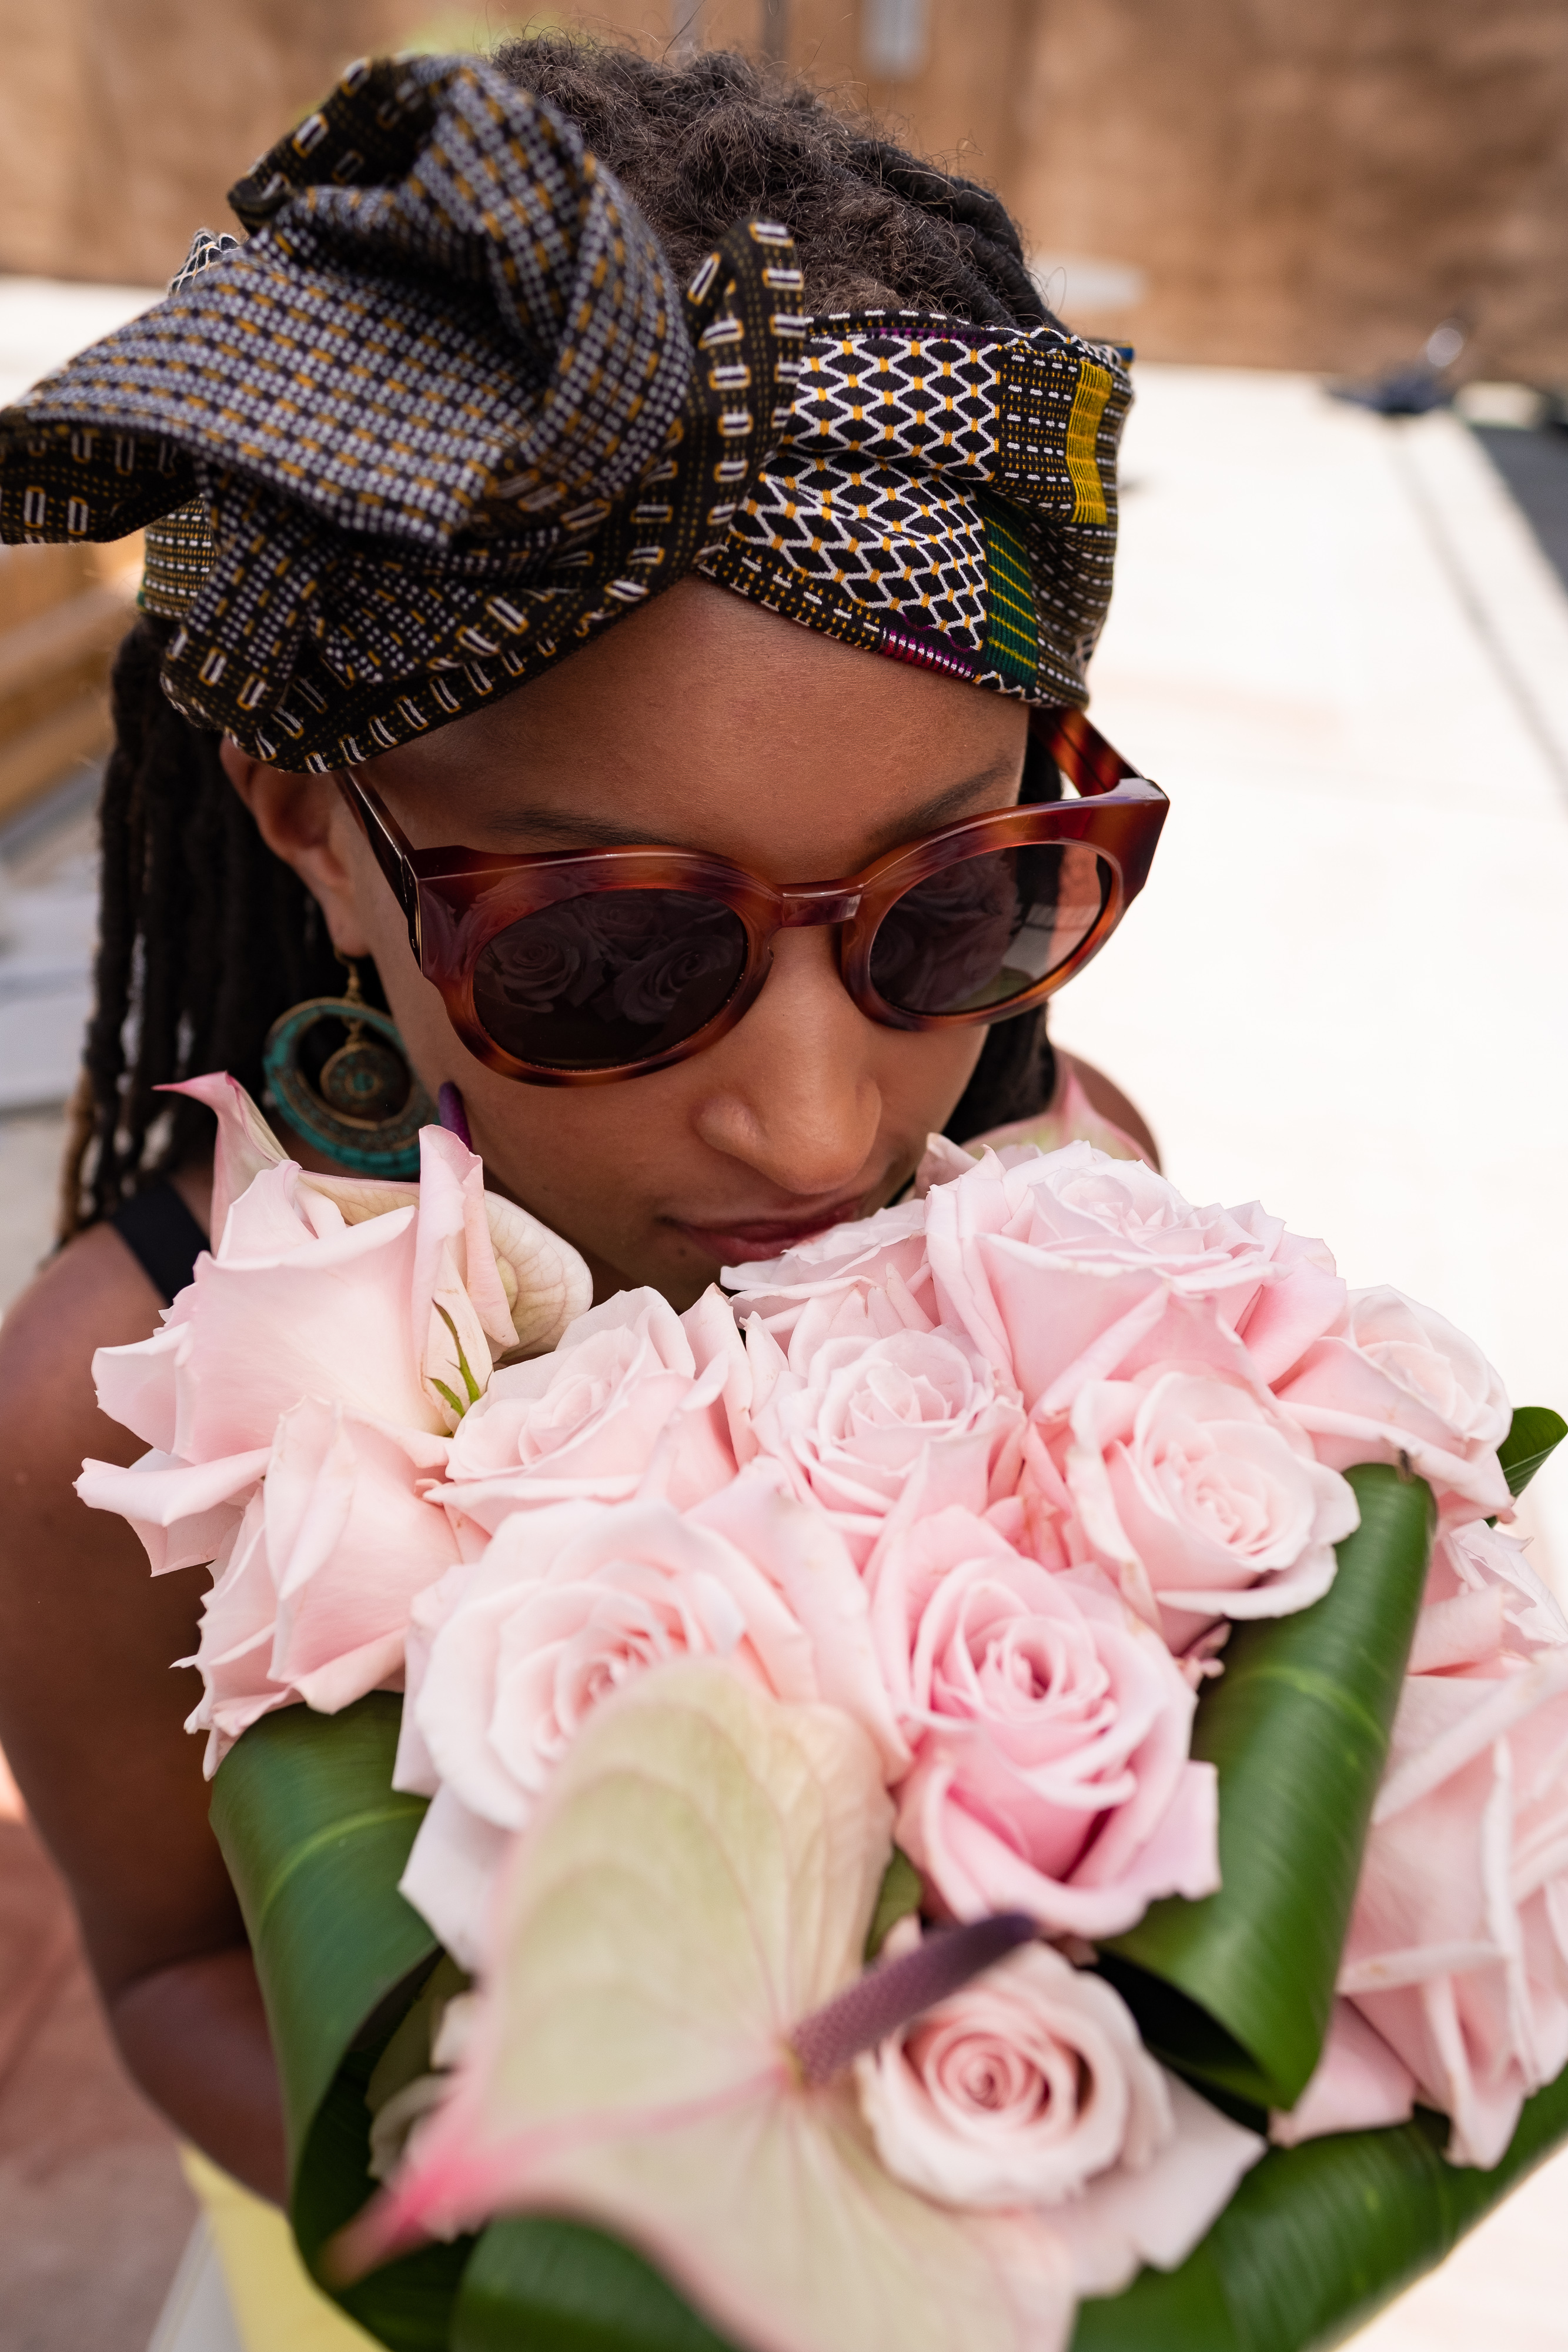 Beautiful woman wearing sunglasses and a brown headwrap with blocks of color throughout, smelling pink roses.